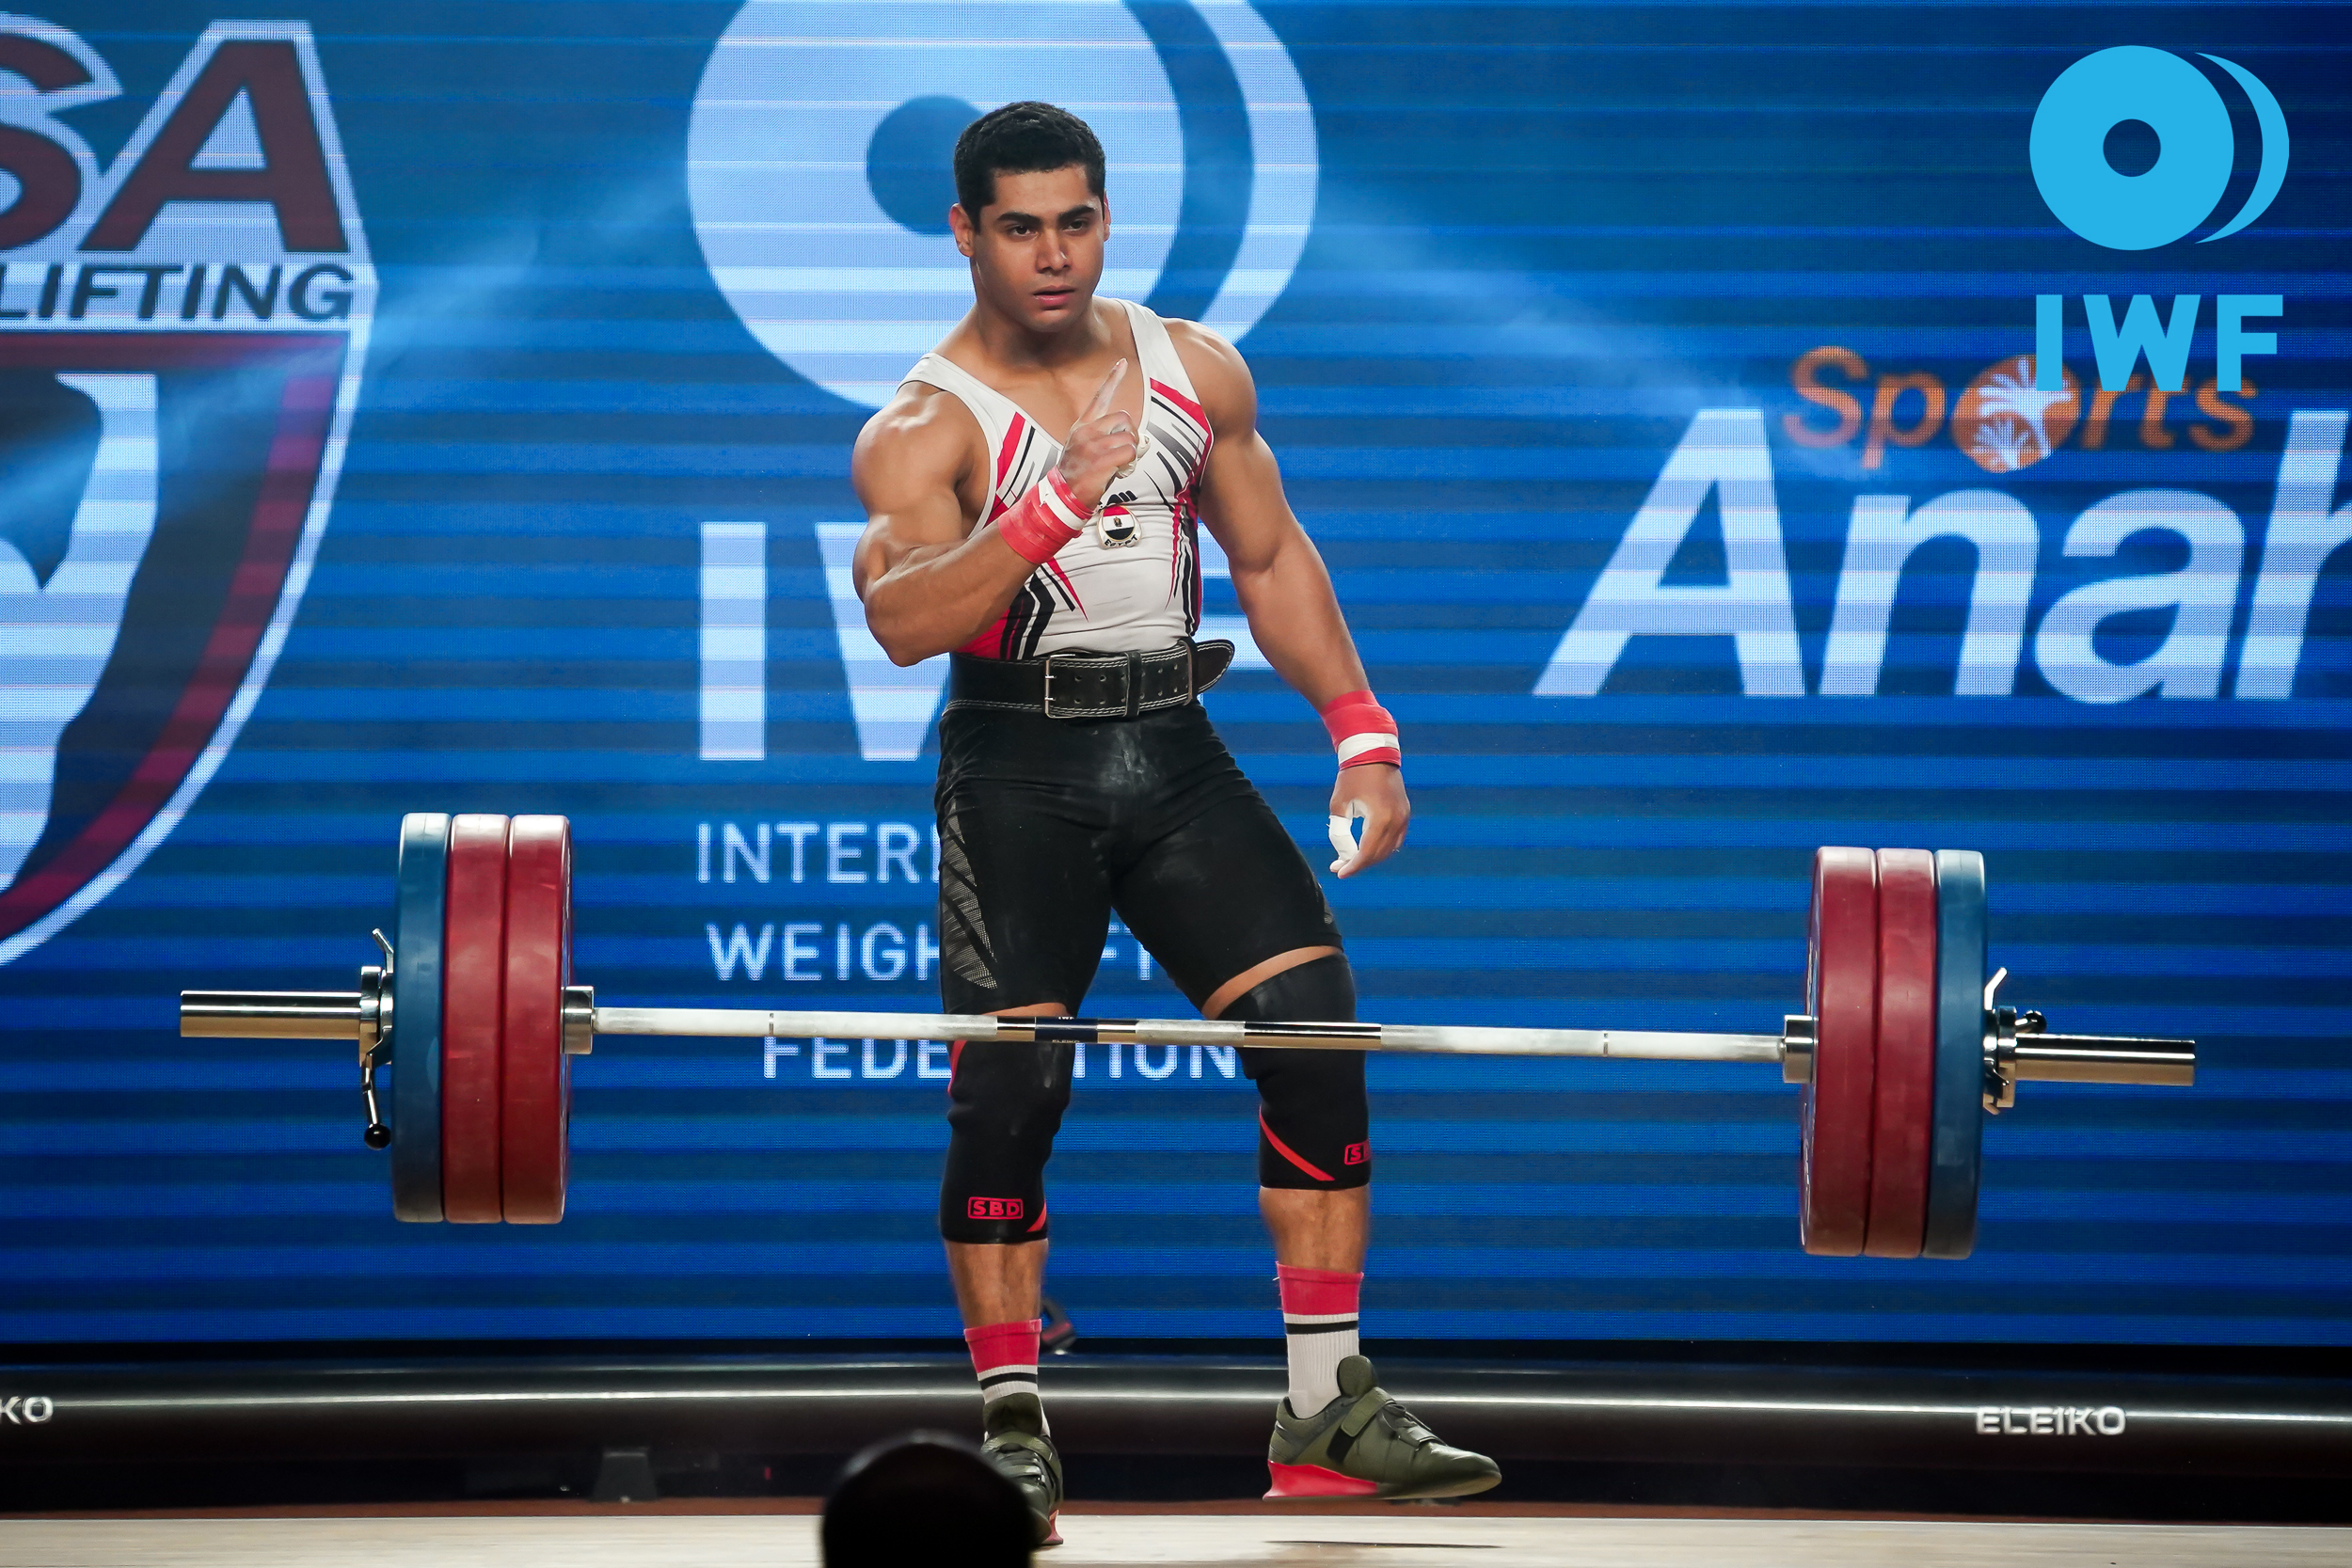 The Amazing Health Benefits of Olympic Weightlifting